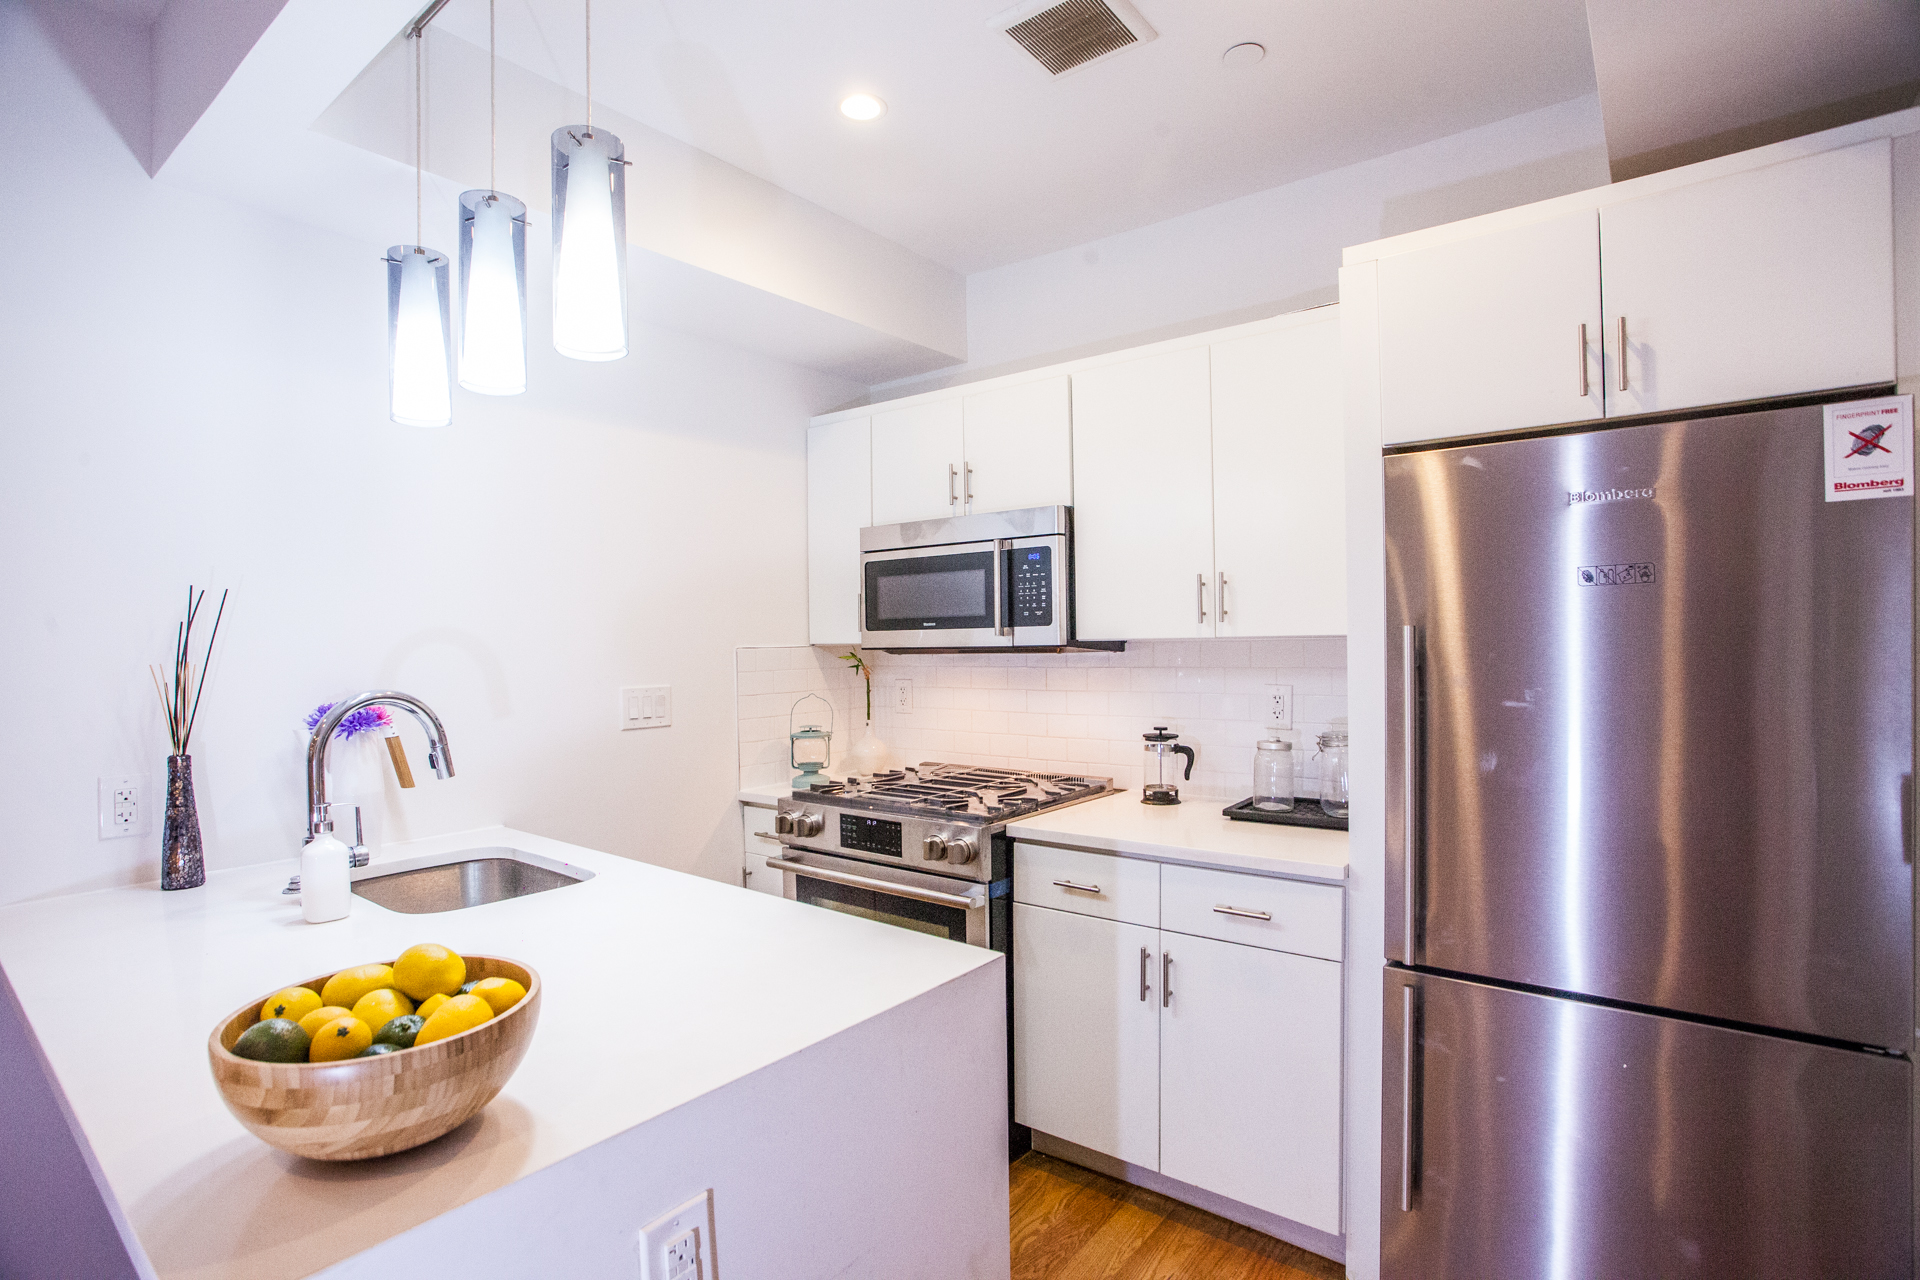 173 Knickerbocker Avenue, Apt 1-B - 5